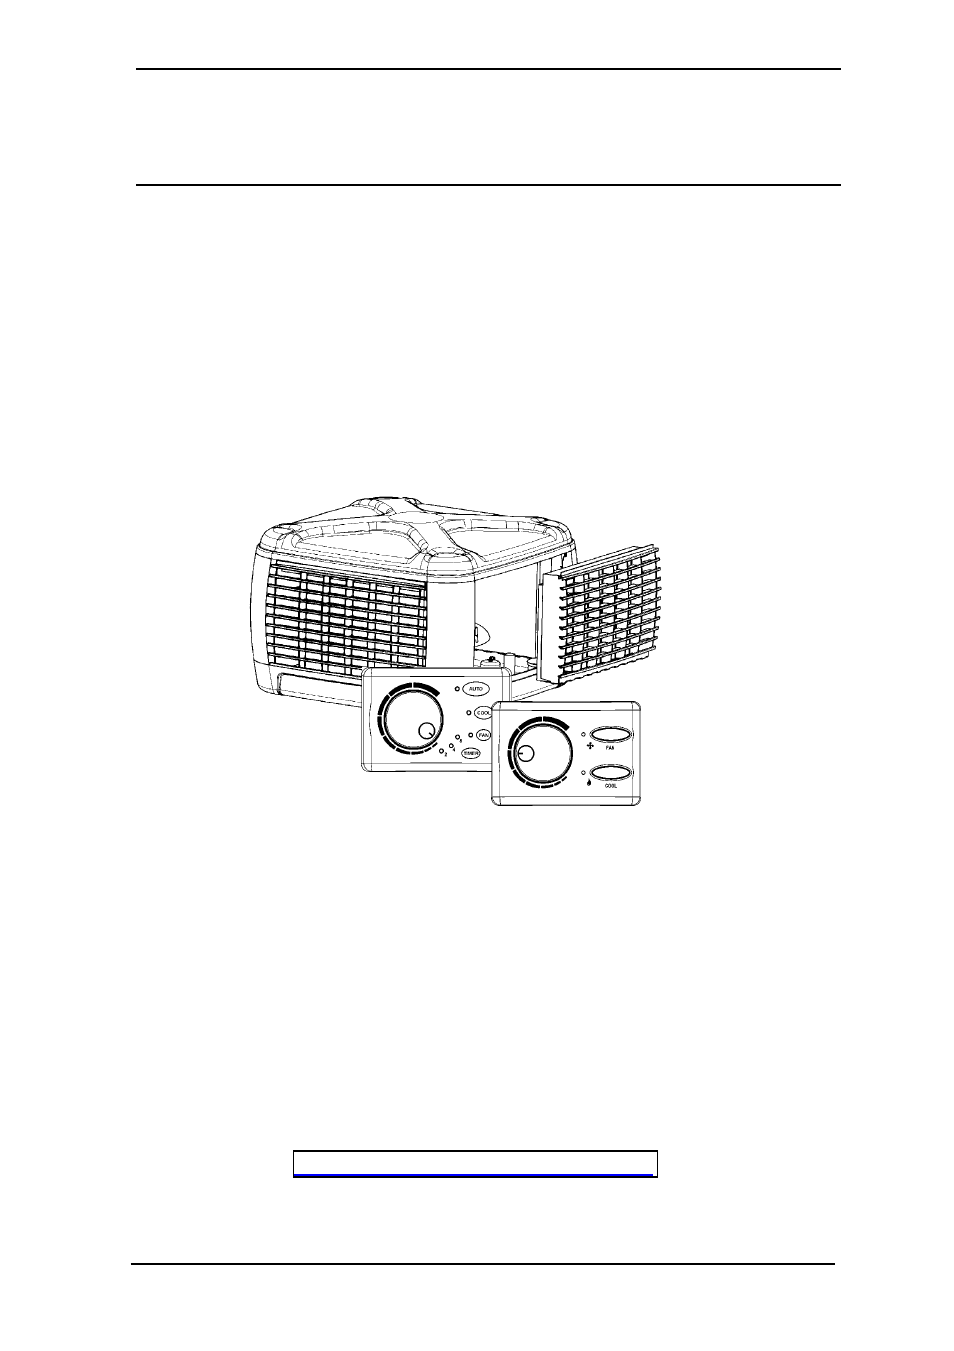 Mastercool Evaporative Cooler Wiring Diagram : Mastercool evaporative cooler thermostat wiring diagram